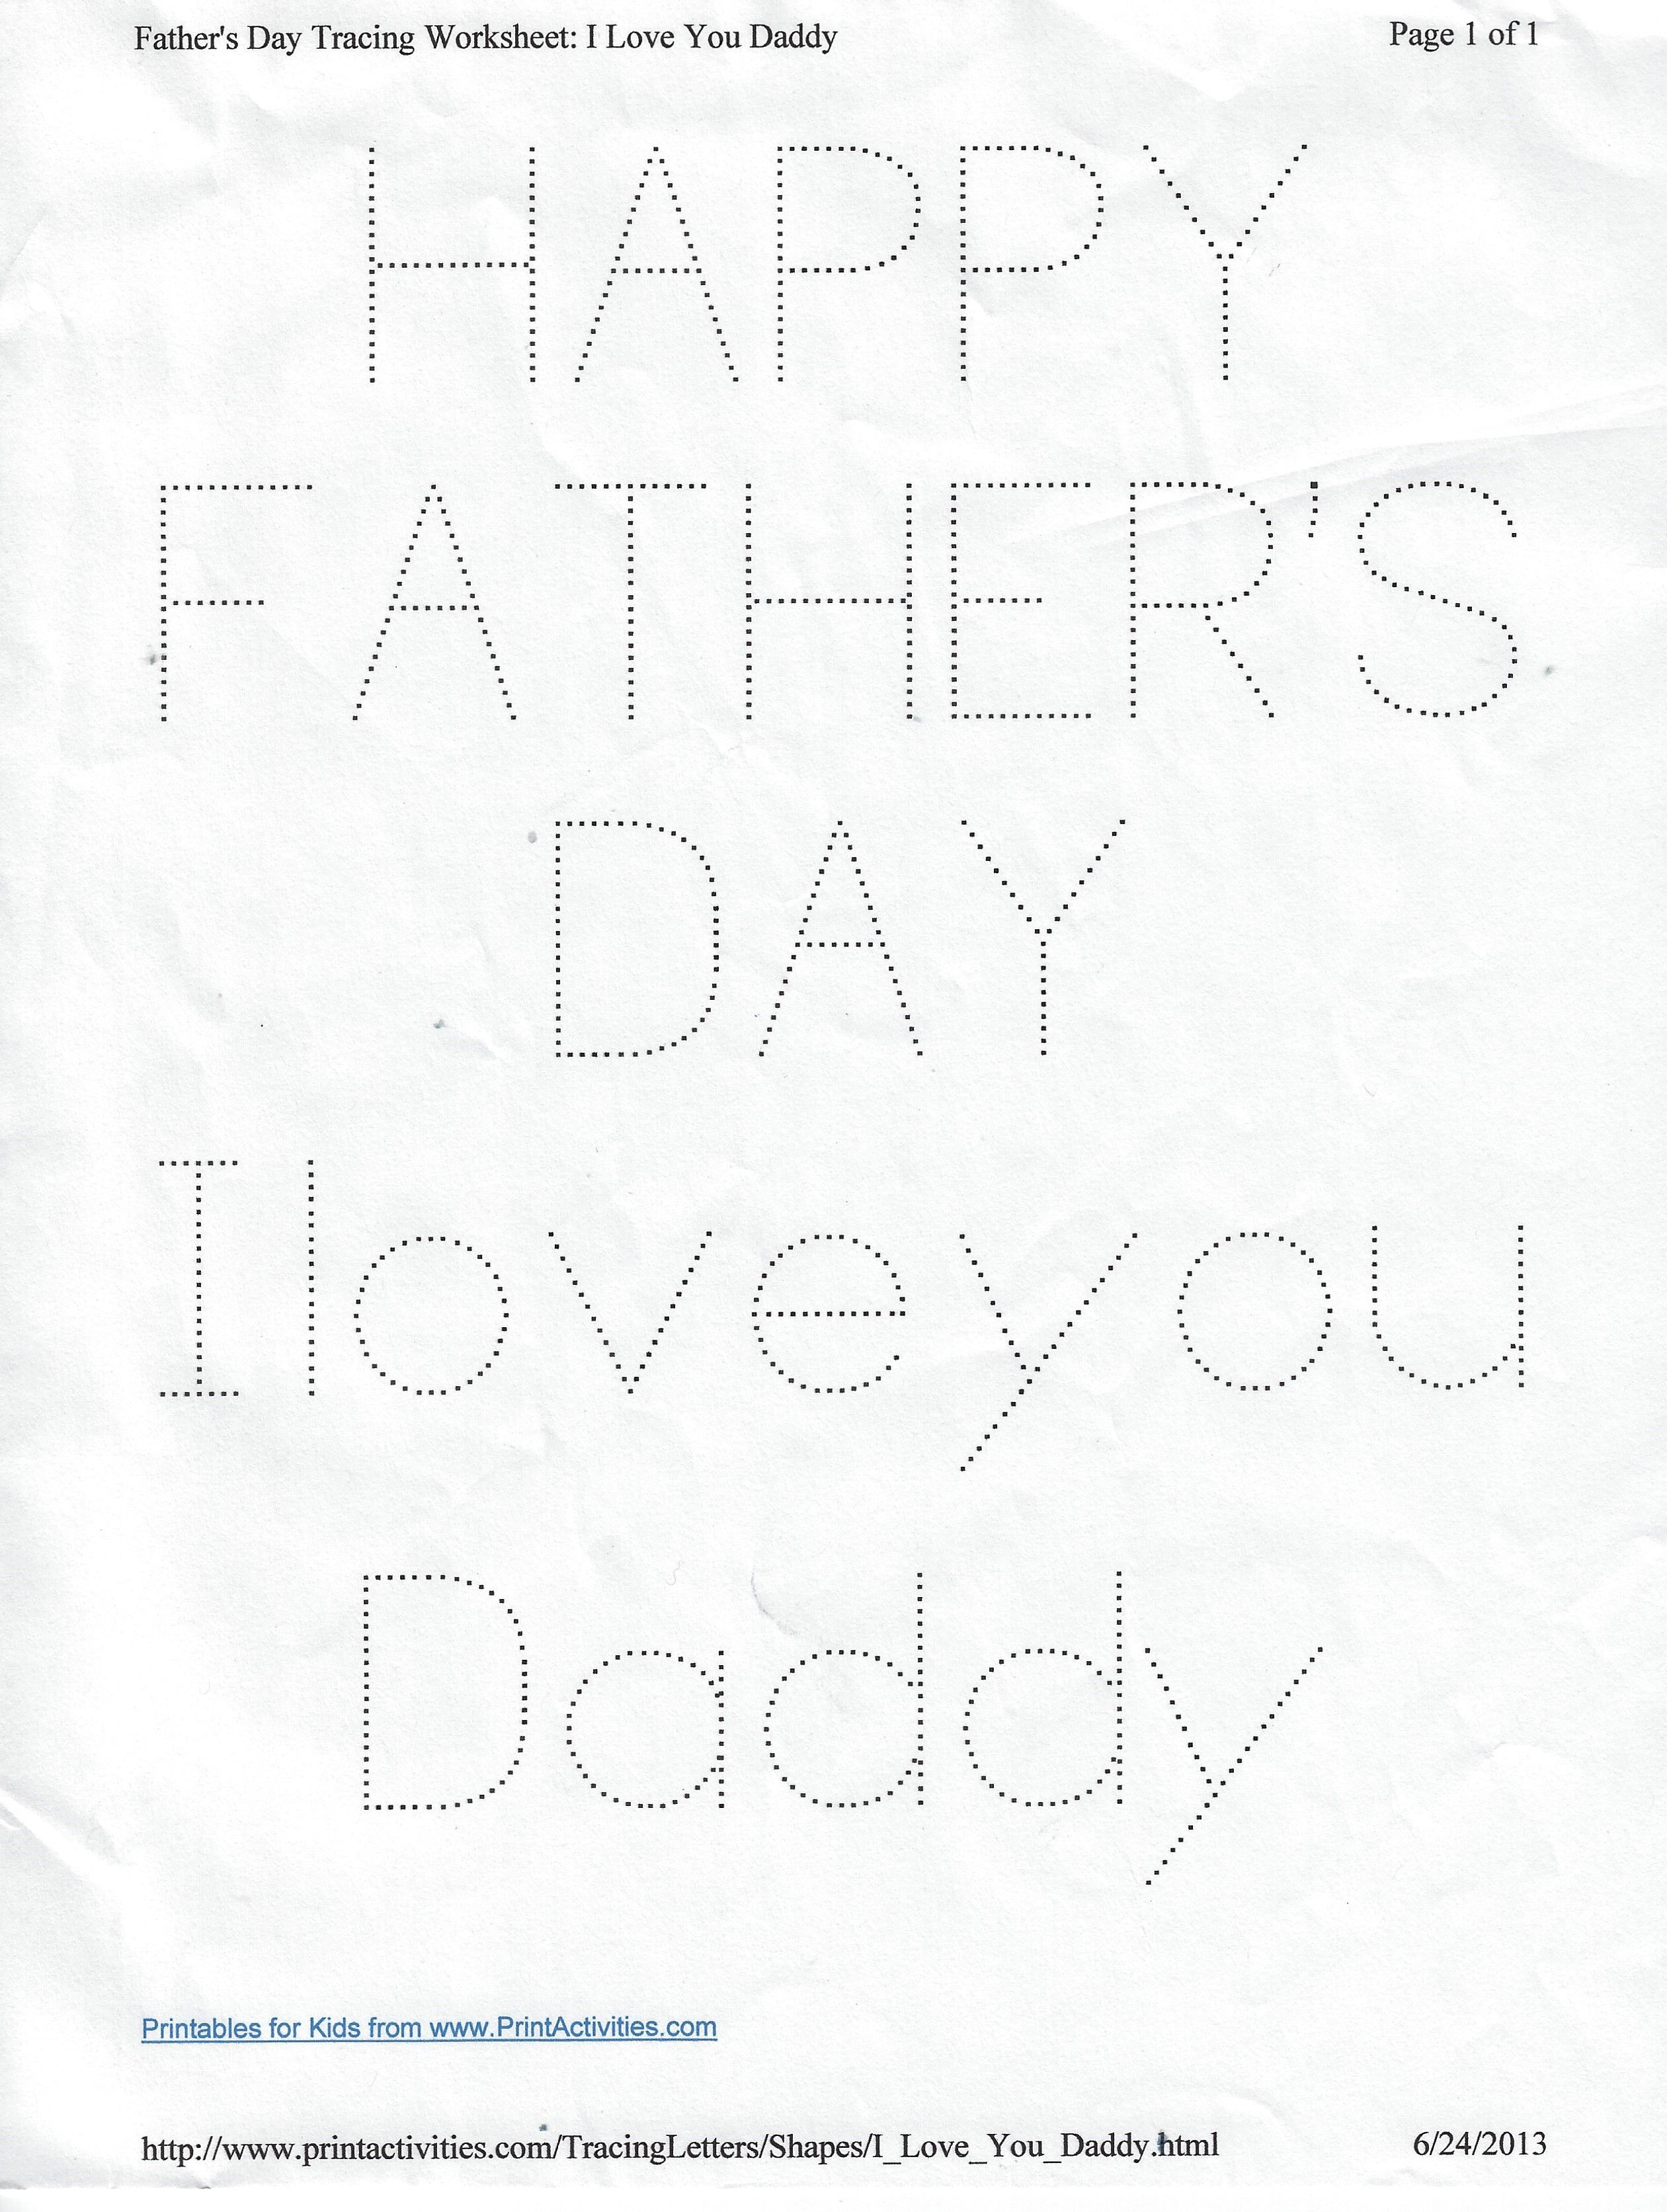 Pin By Guylaine Labbe On Father S Day Preschool Crafts